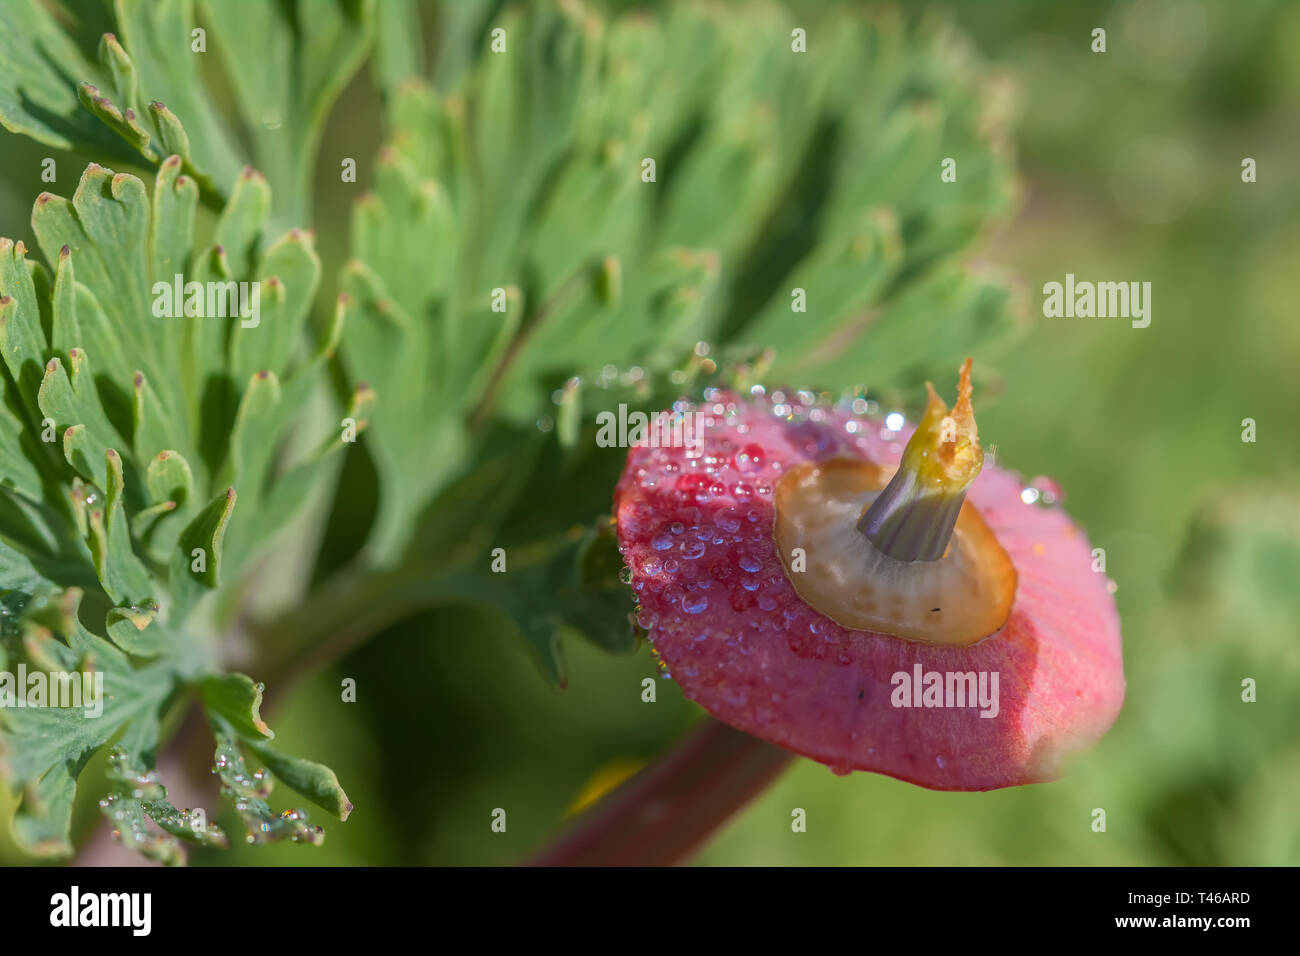 Close up at a young California poppy fruit (Eschscholzia californica) cover with dew. - Stock Image